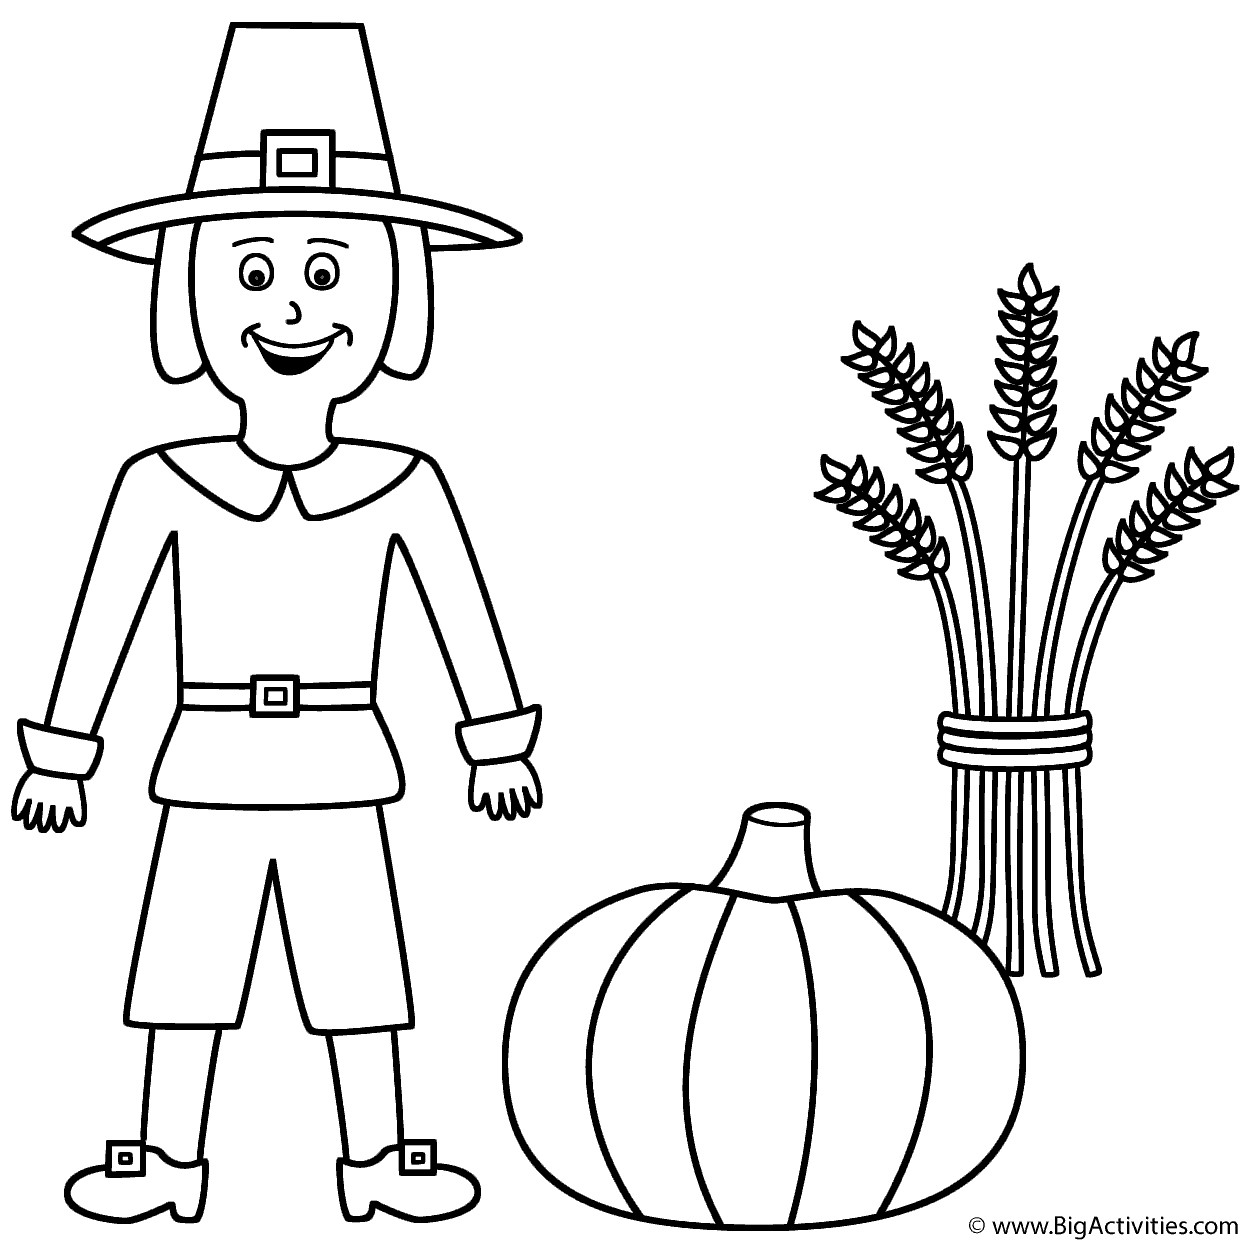 1243x1243 Corn And Pumpkin Coloring Pages Galleryhip The Hip Cool Coloring